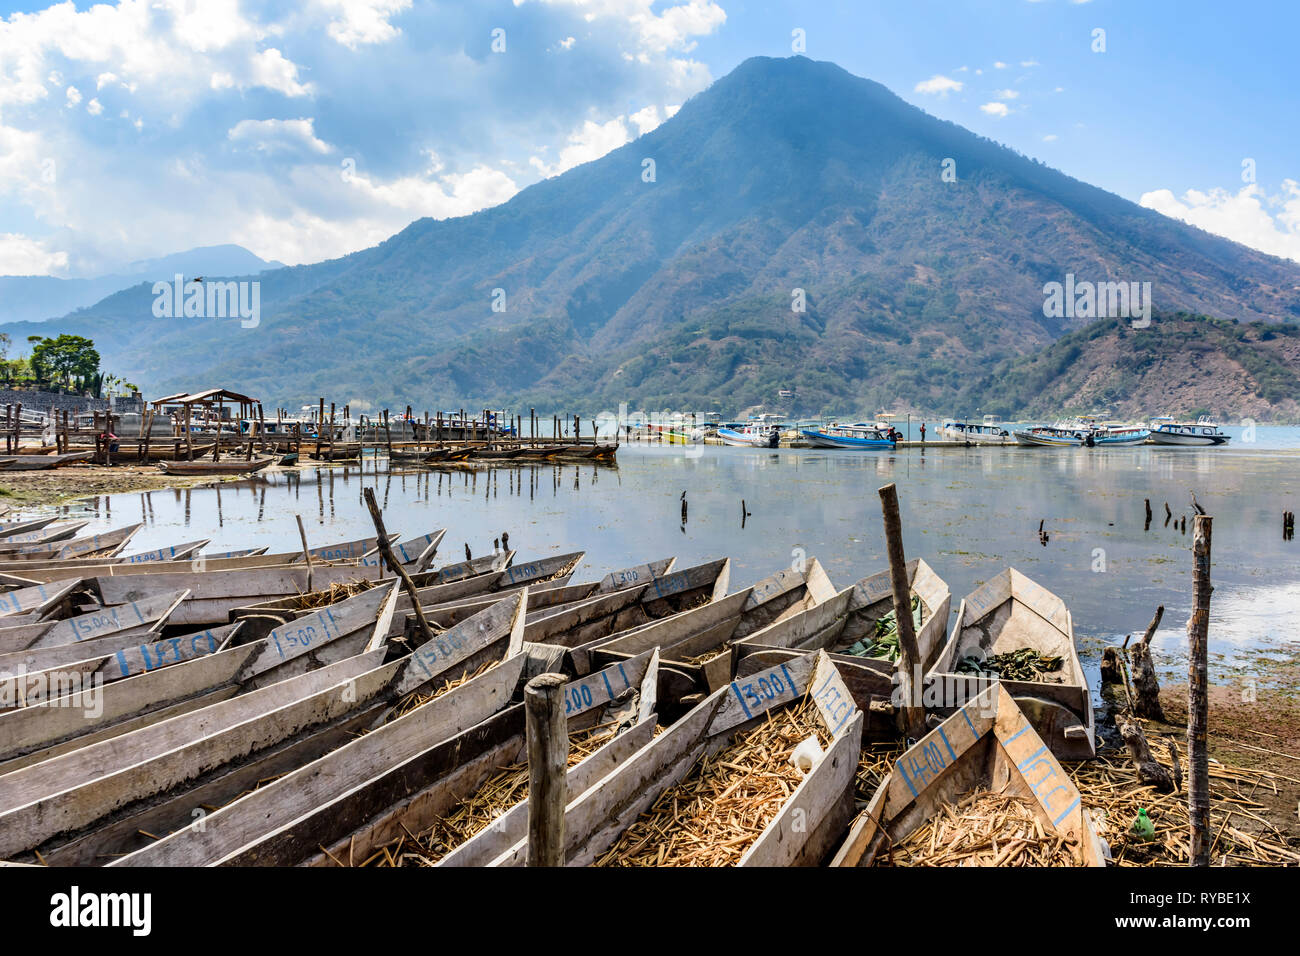 Santiago Atitlan, Lake Atitlan, Guatemala - March 8, 2019: Rows of lakeside traditional canoes with San Pedro volcano behind in largest lakeside town - Stock Image